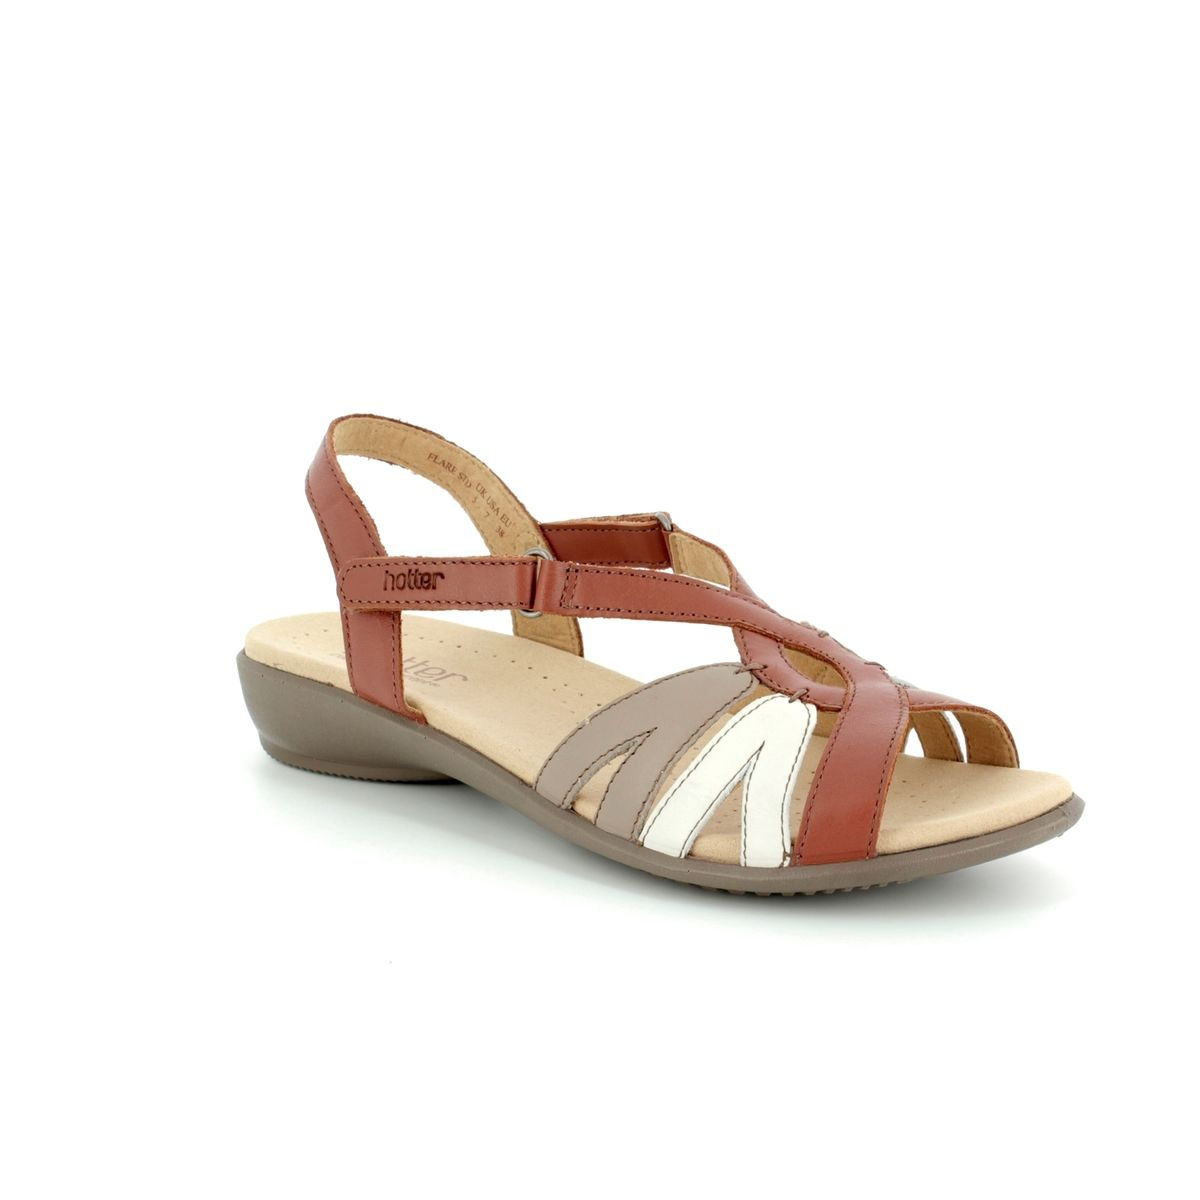 85c6aa30fa7 Hotter Sandals - Tan multi - 8107 11 FLARE E FIT